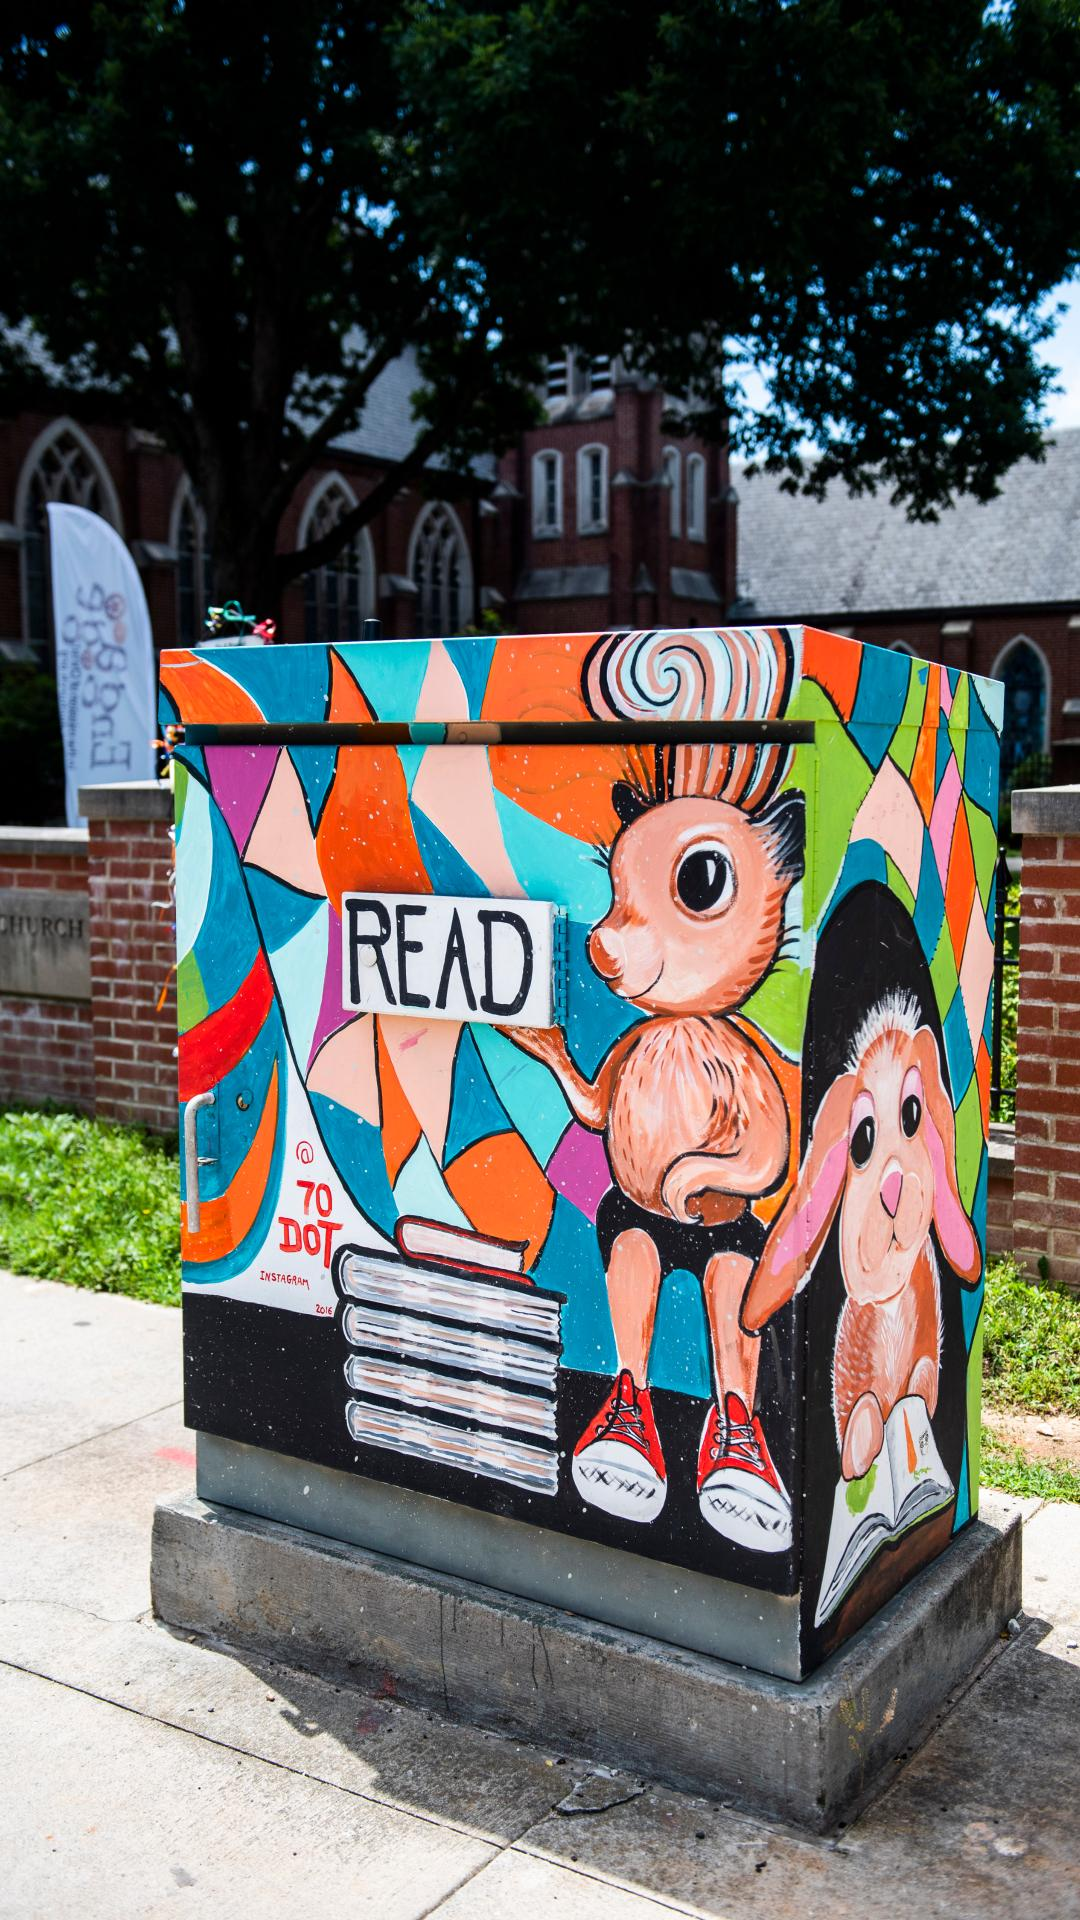 Enjoy the charming, small-town feel of Decatur